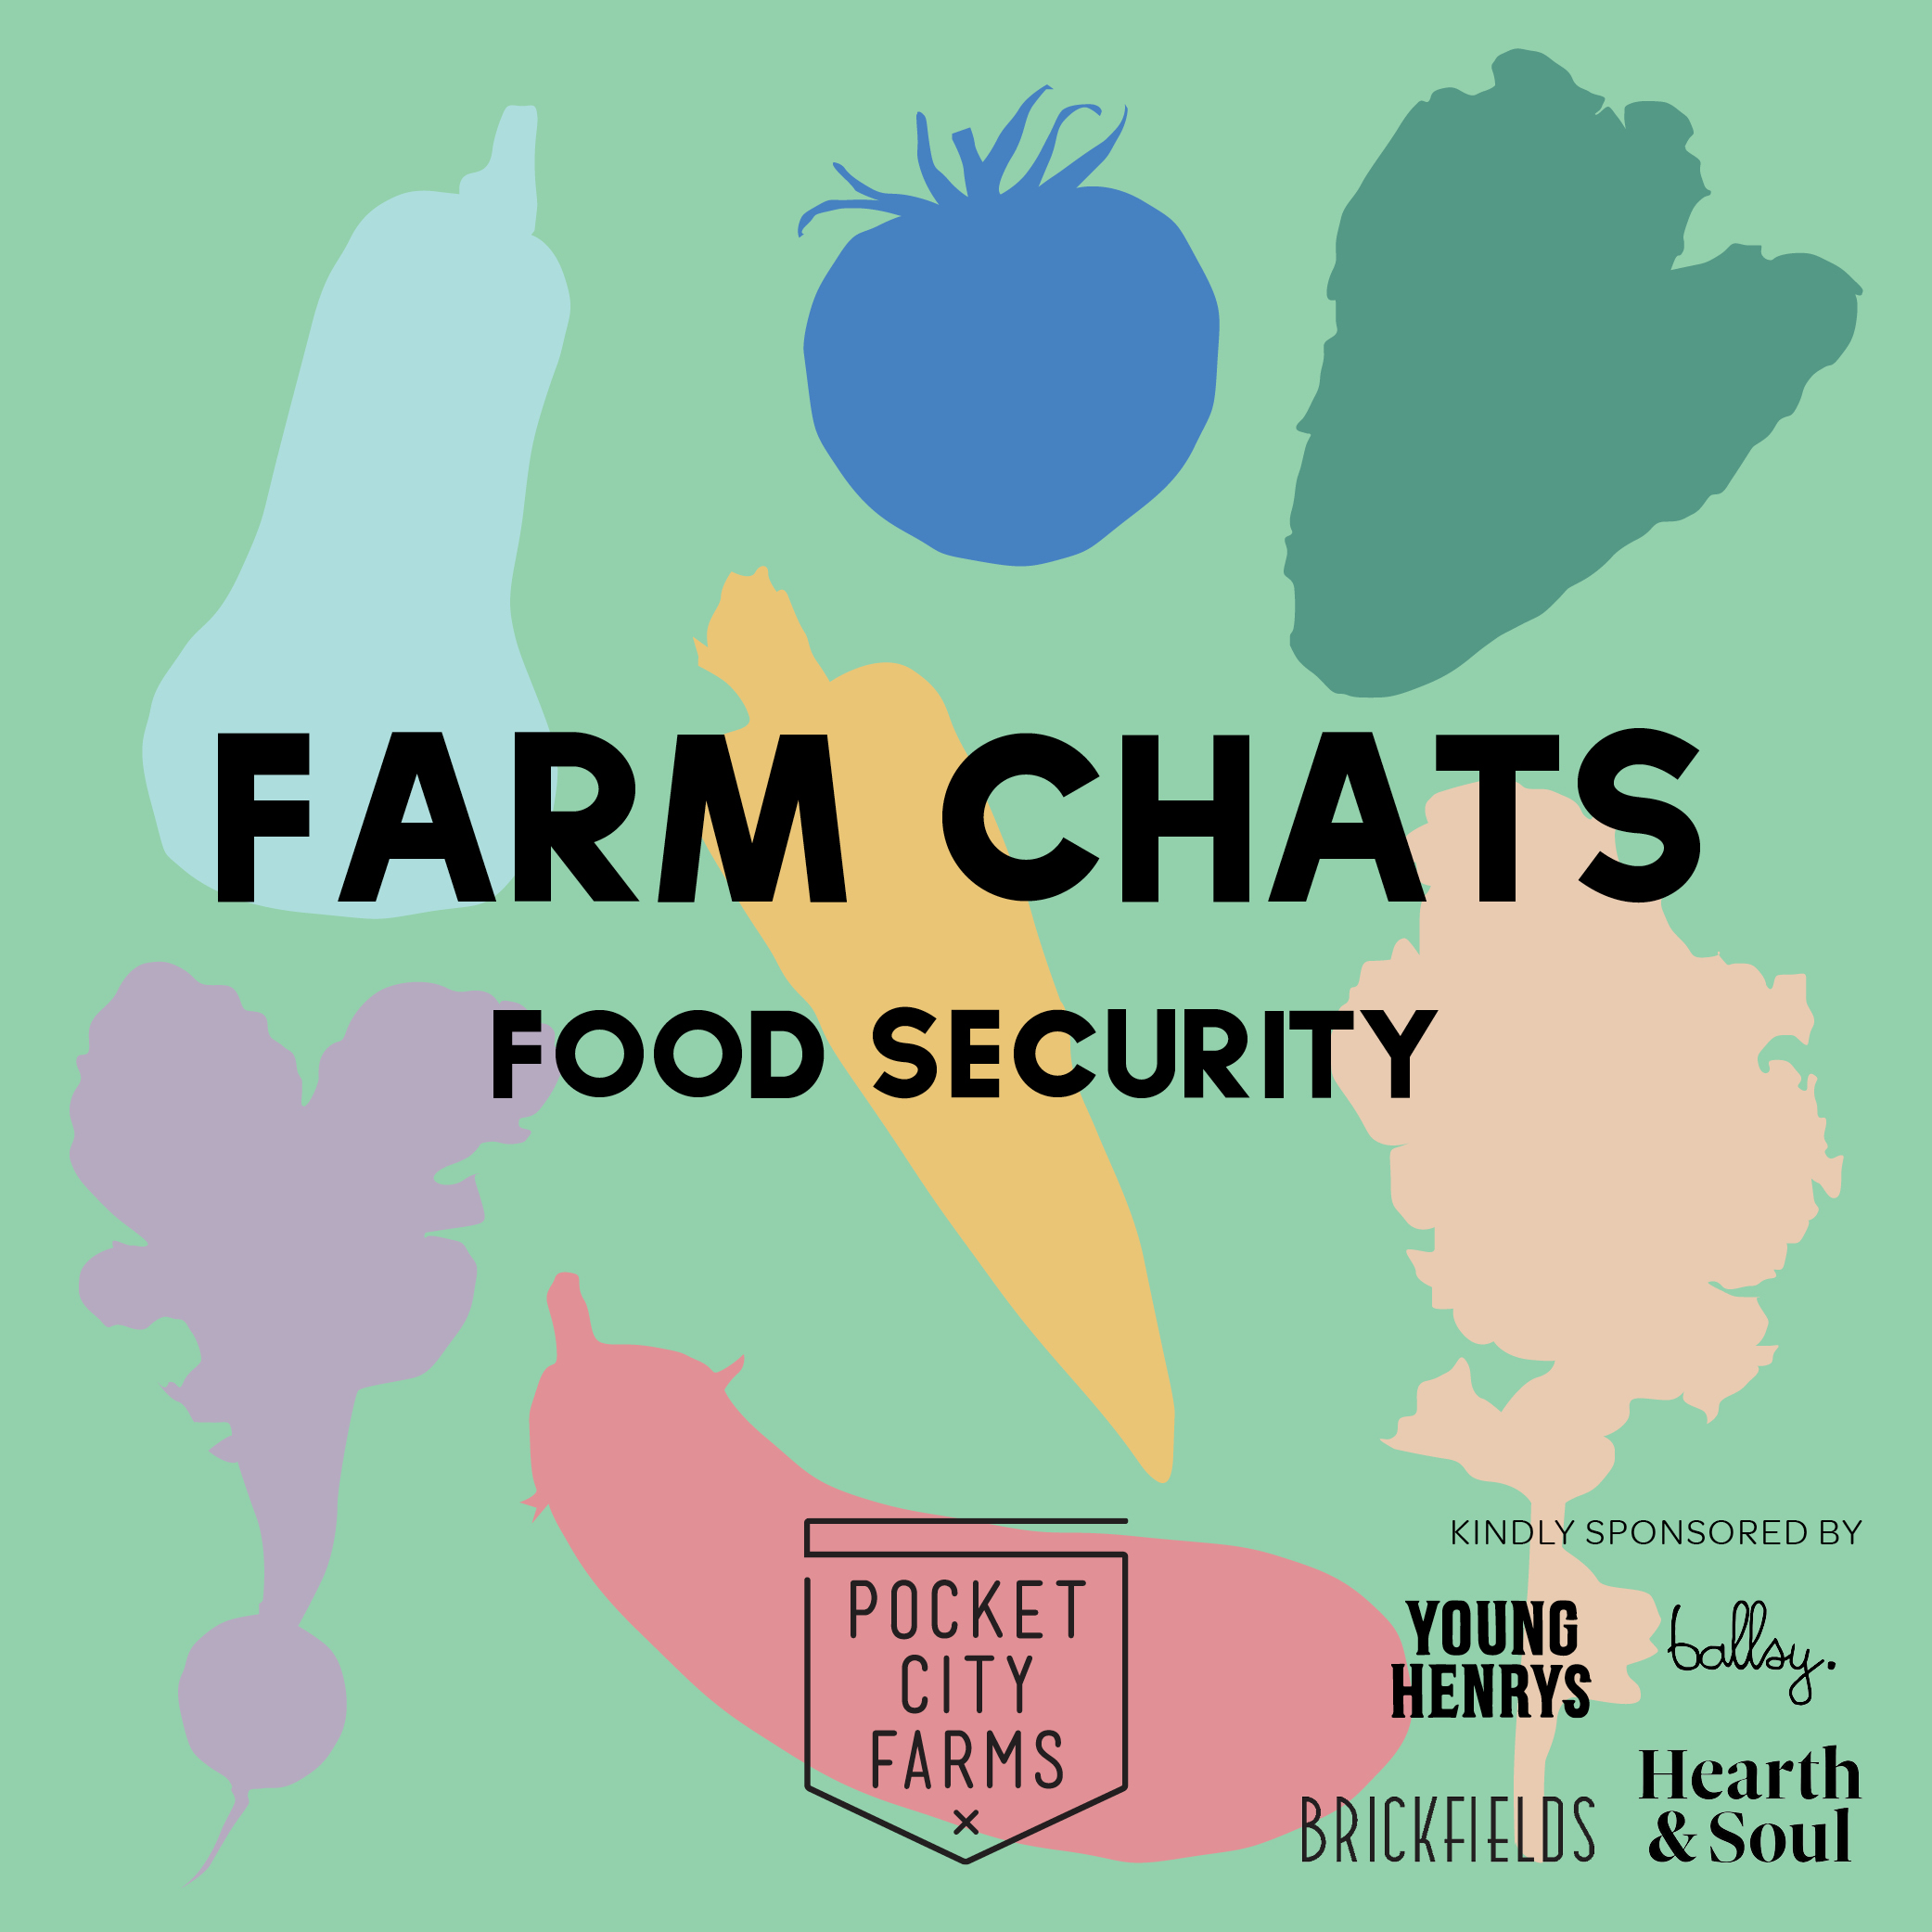 farmchatsvegetables-pcf-square-foodsecurity.jpg